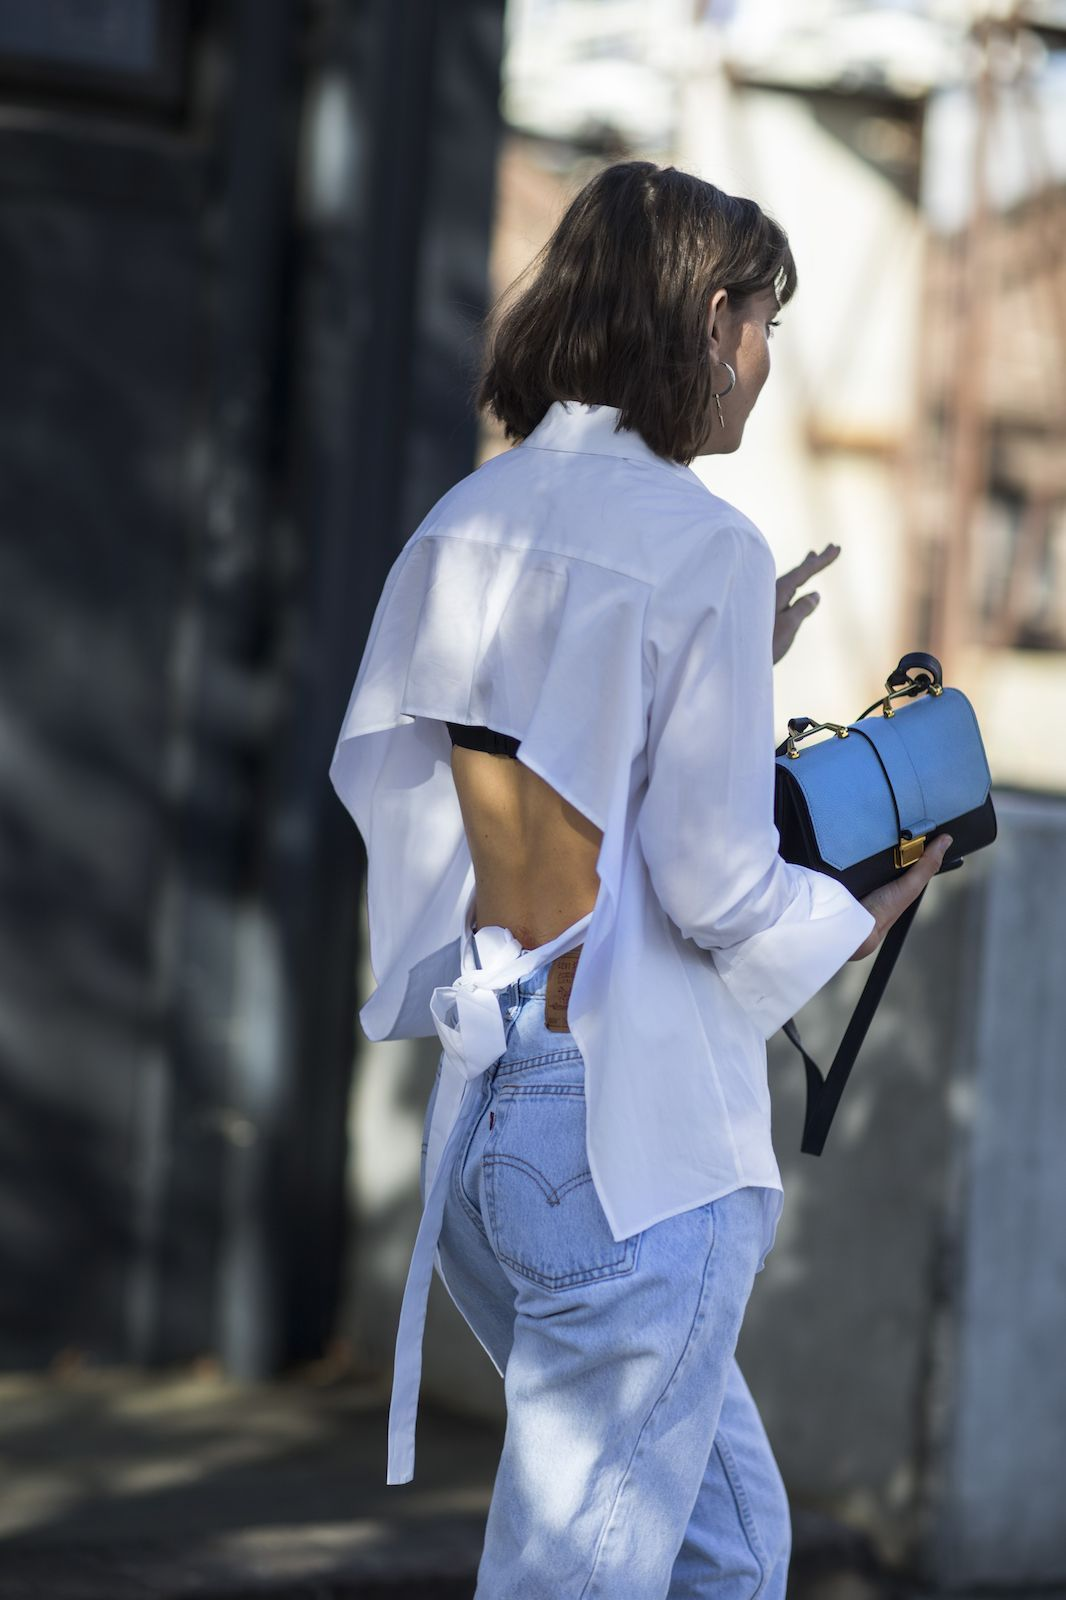 See All The Best Street Style From Fashion Week Down Under #refinery29 http://www.refinery29.com/2016/05/111596/sydney-fashion-week-resort-2016-street-style-pictures#slide-5 Feel the breeze in an open-backed blouse....